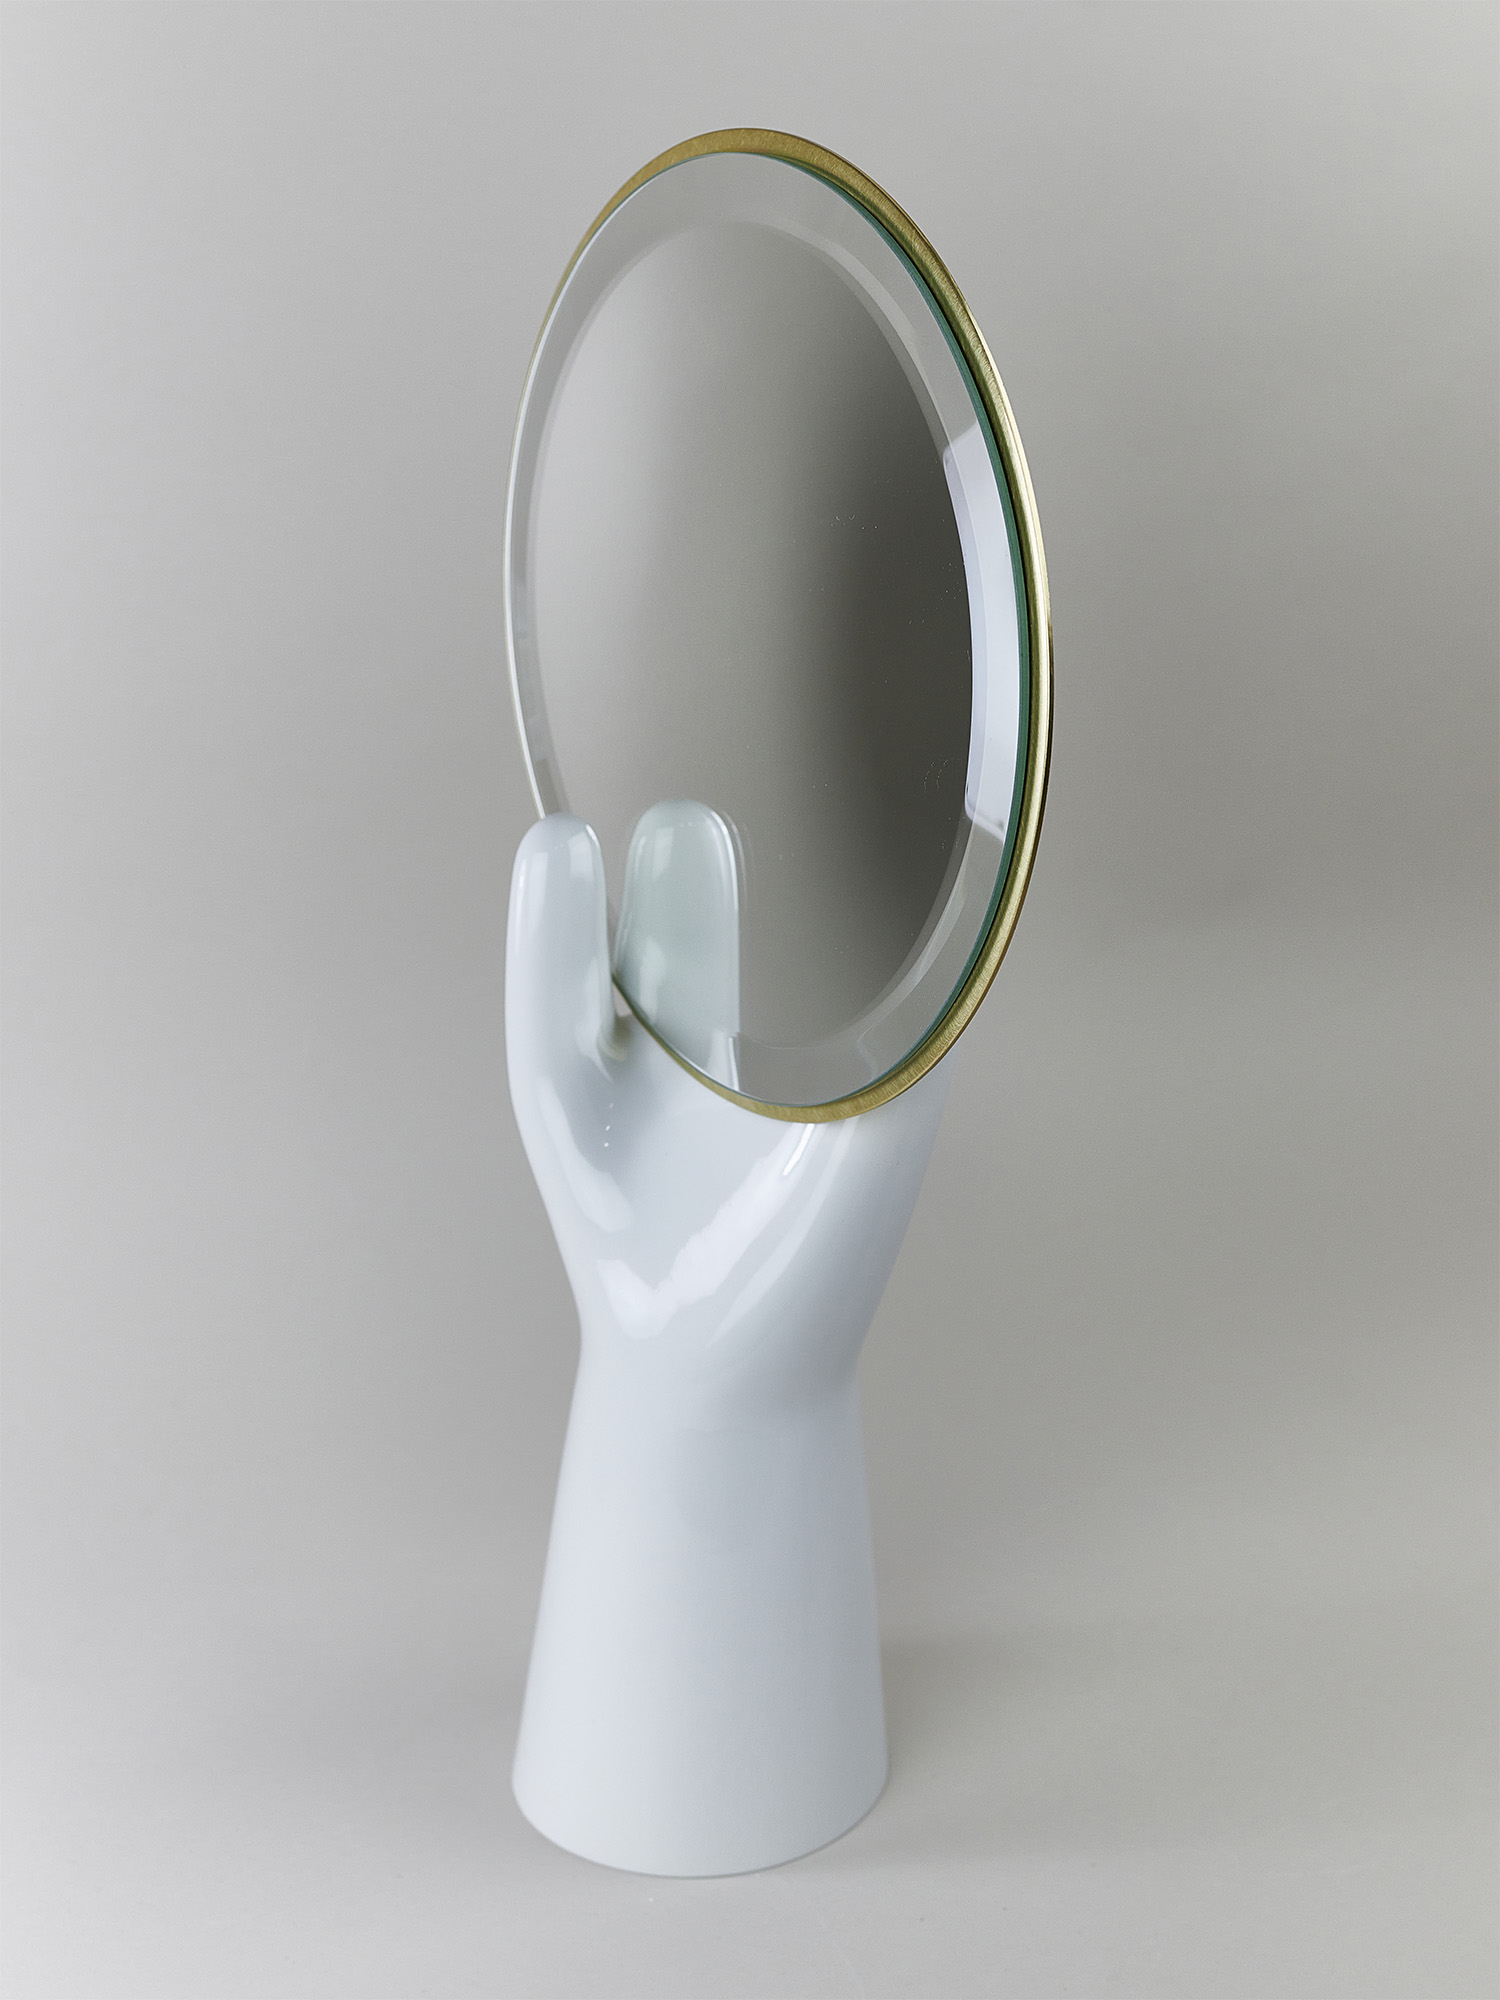 A porcelain hand with mirror by Qubus design studio